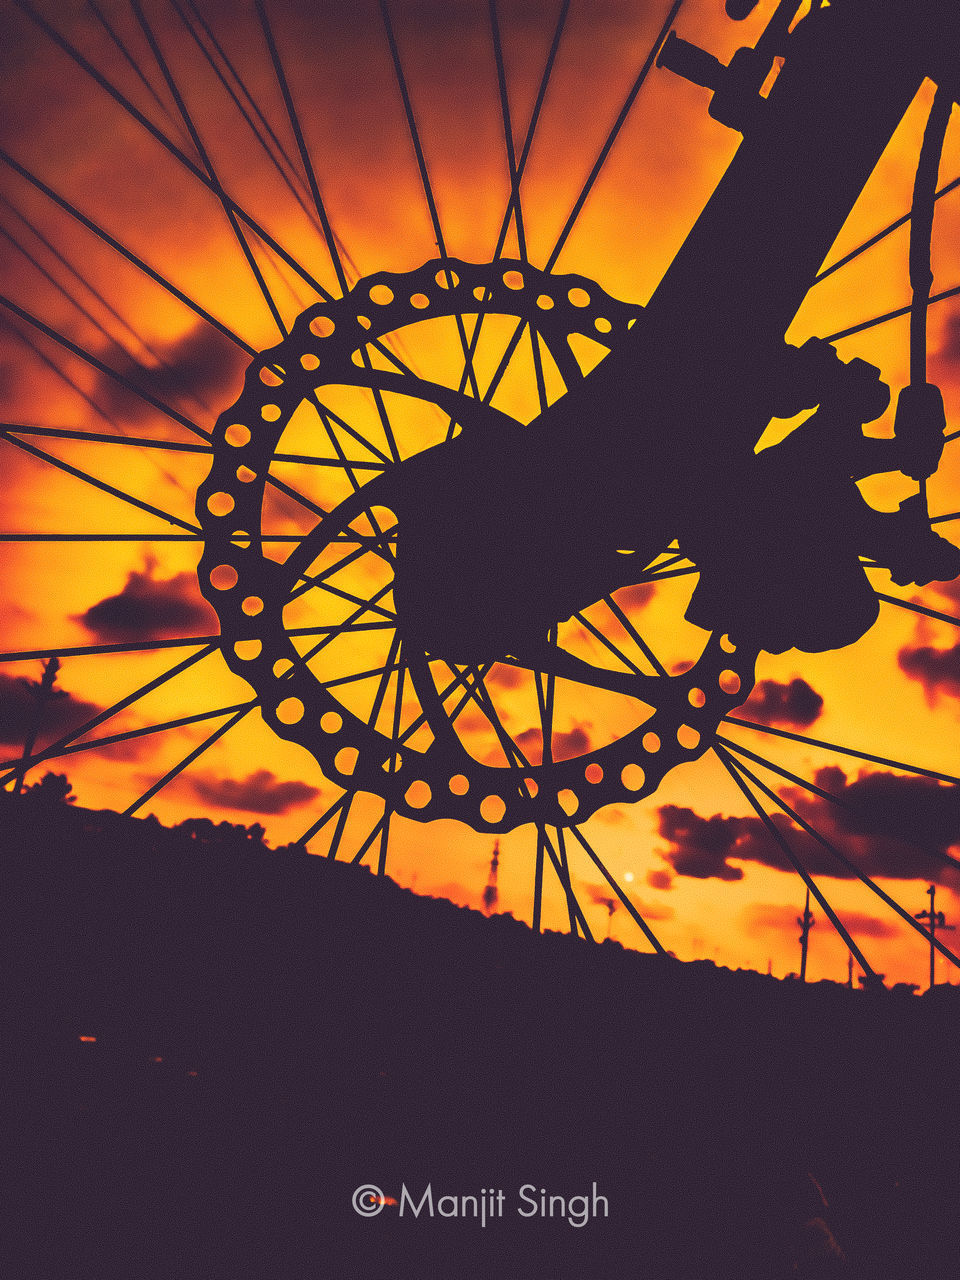 CLOSE-UP OF SILHOUETTE ROLLERCOASTER AGAINST SKY AT SUNSET